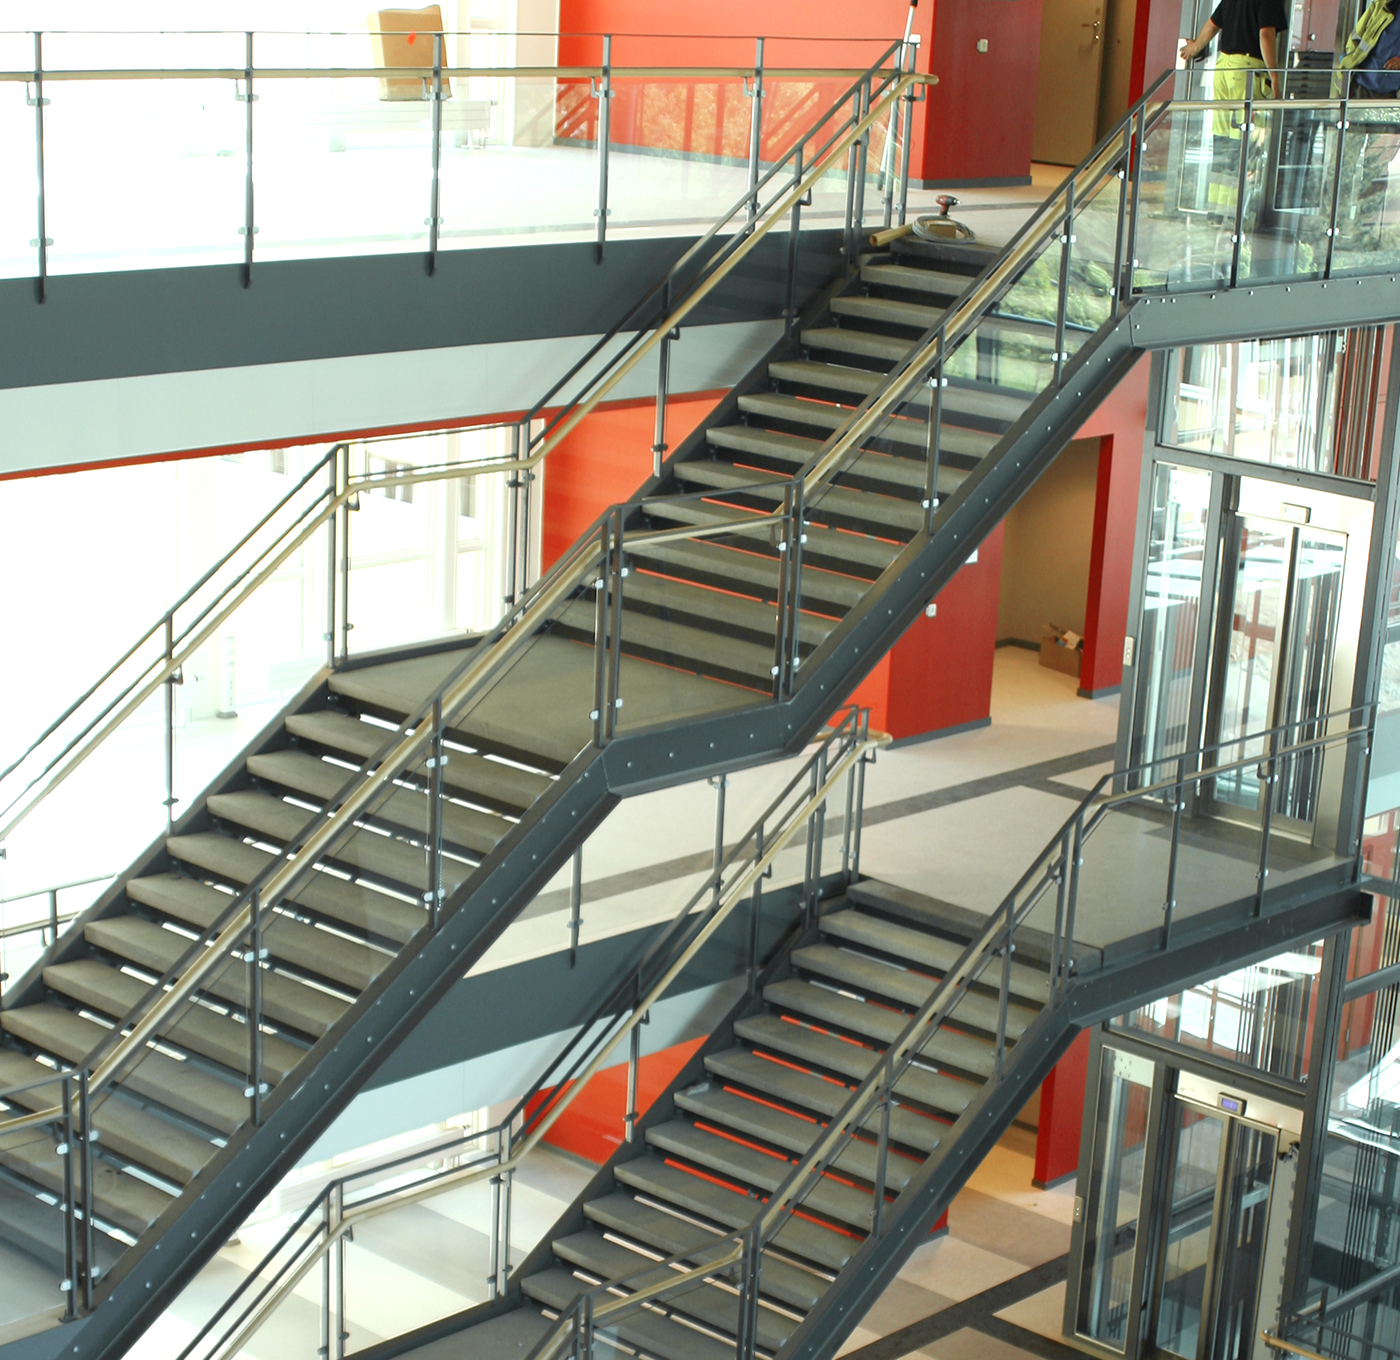 Glass railing with wooden inner handrail